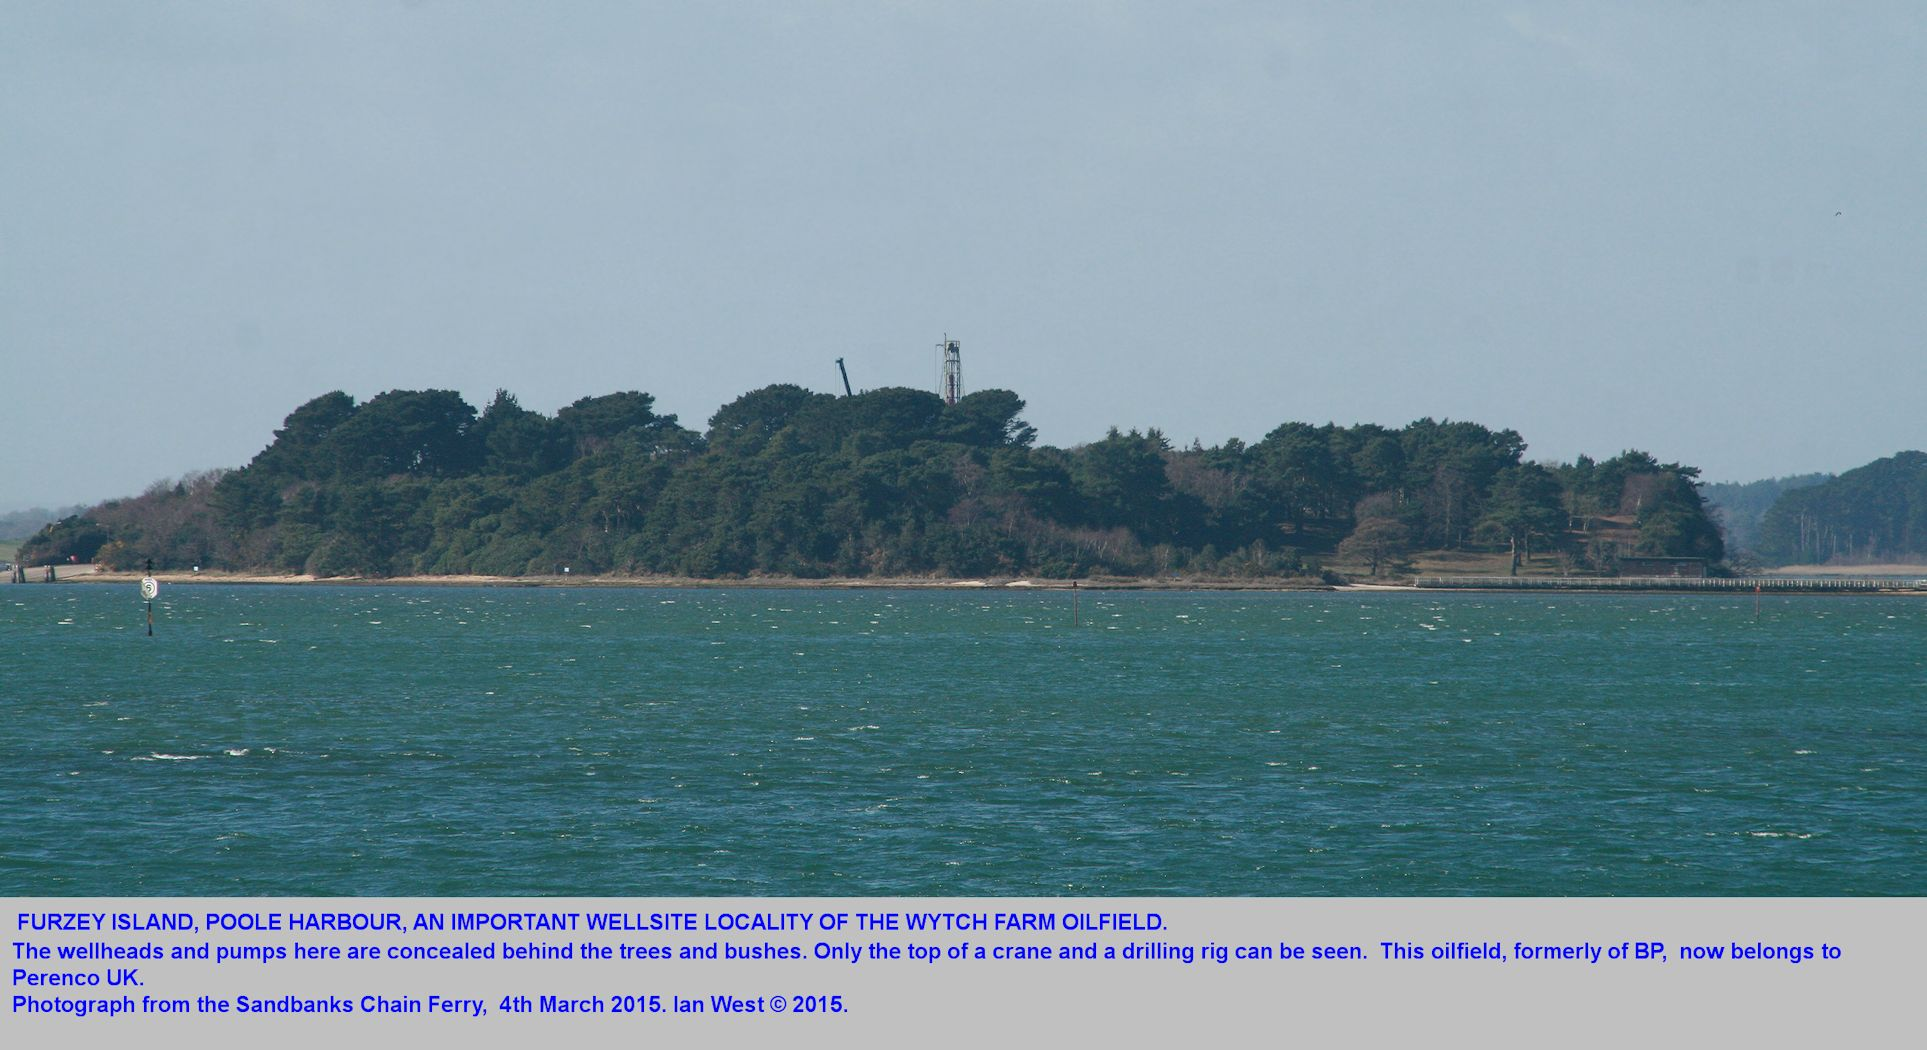 Furzey Island, a major wellsite locality of the Wytch Farm Oilfield, seen from the Sandbanks Chain Ferry, 4th March 2014